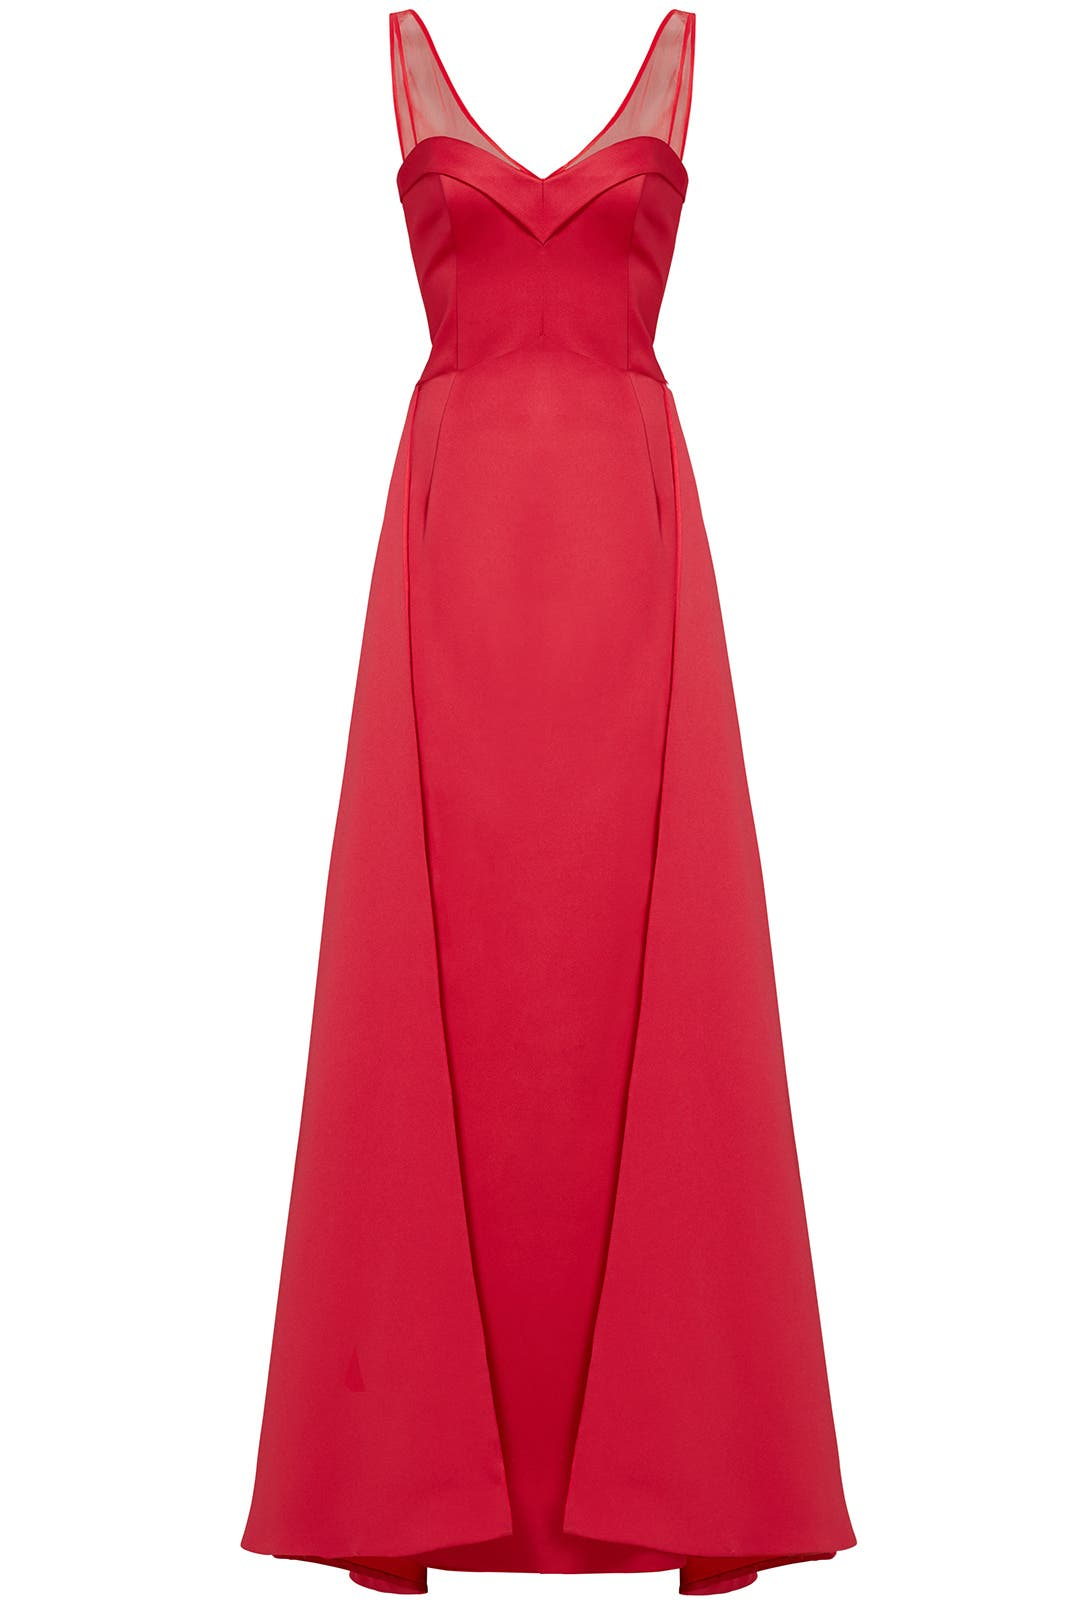 Red Akane Gown by nha khanh for $184 | Rent the Runway